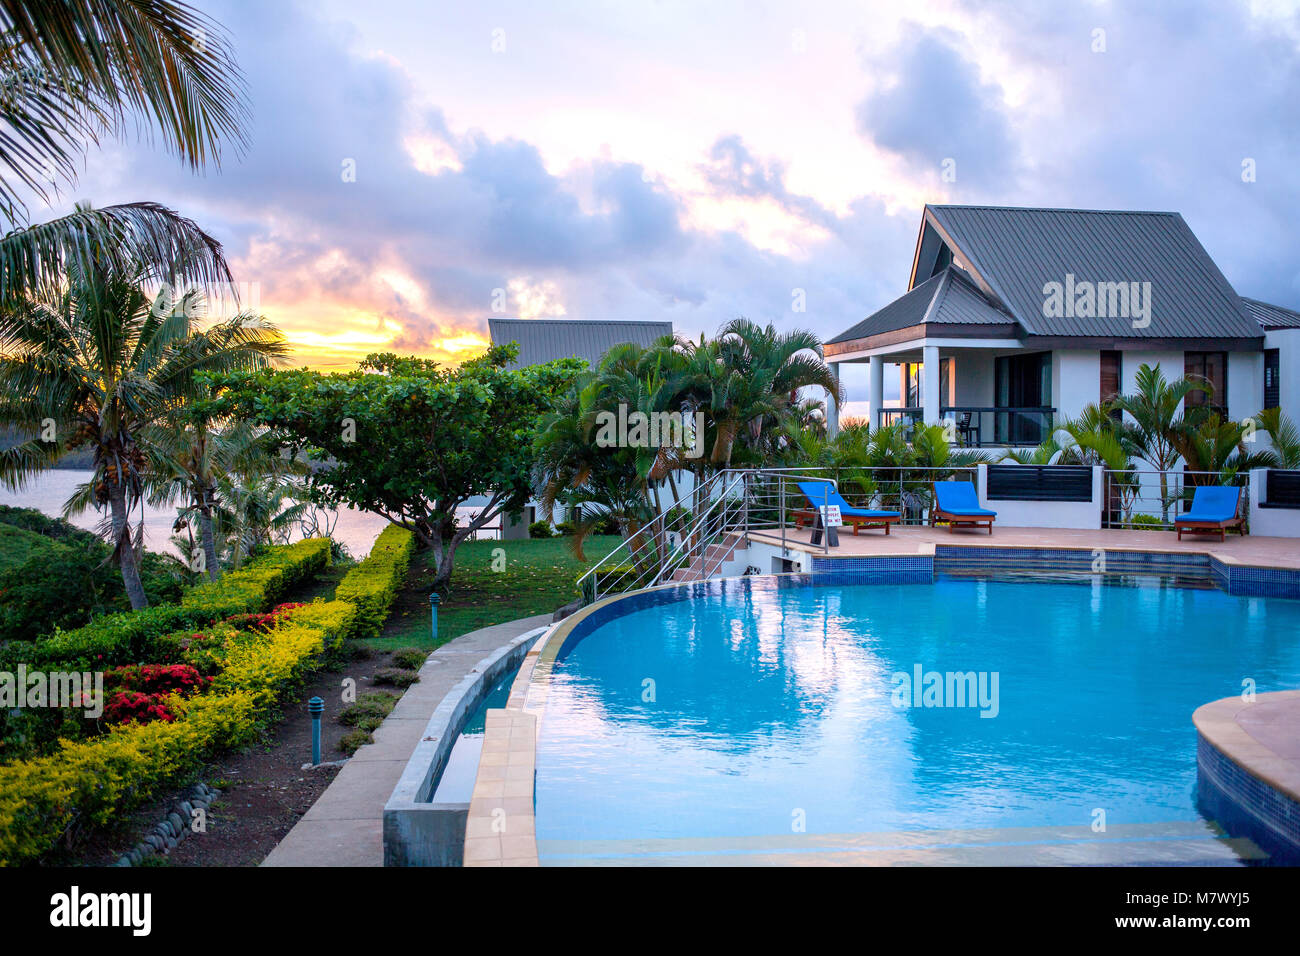 View of luxury villas with swimming pool and seats surrounded by palms on Fiji island during beautiful sunrise. - Stock Image